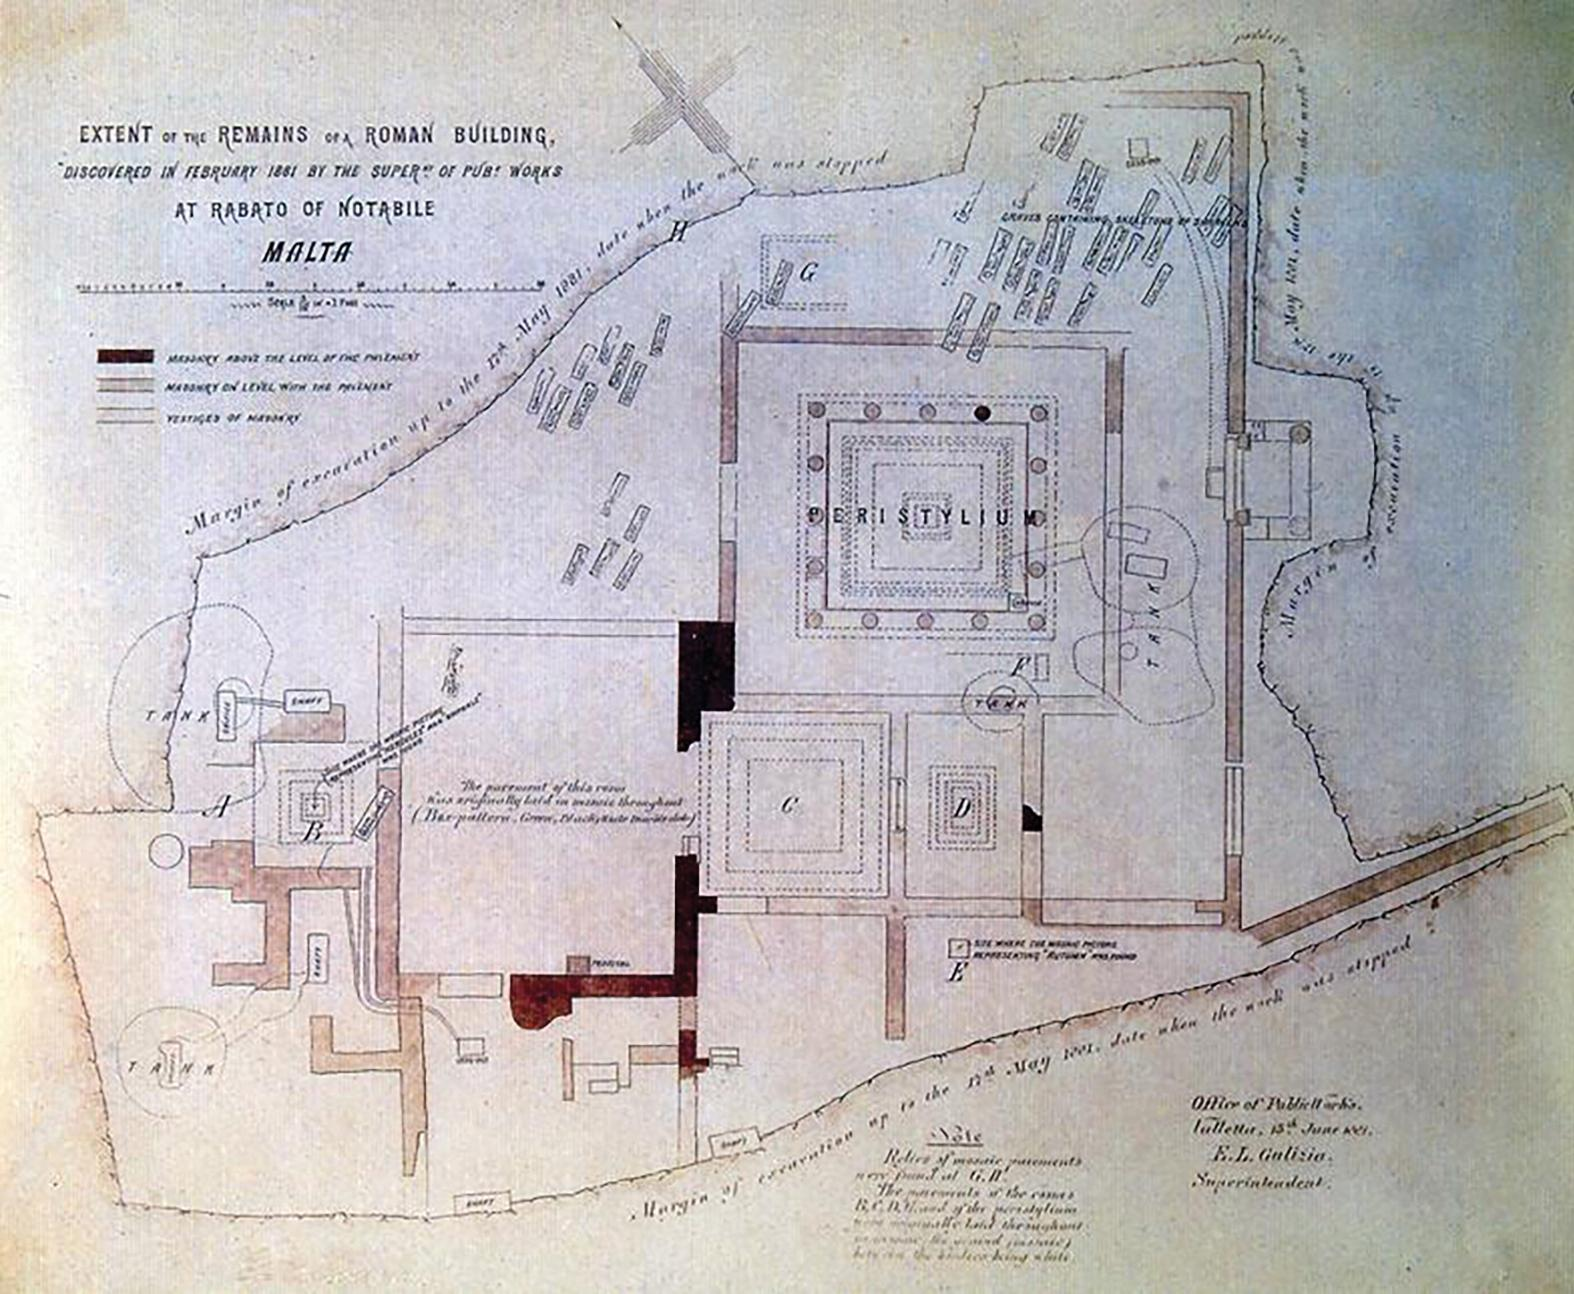 A plan showing the remains uncovered by Caruana in 1881.